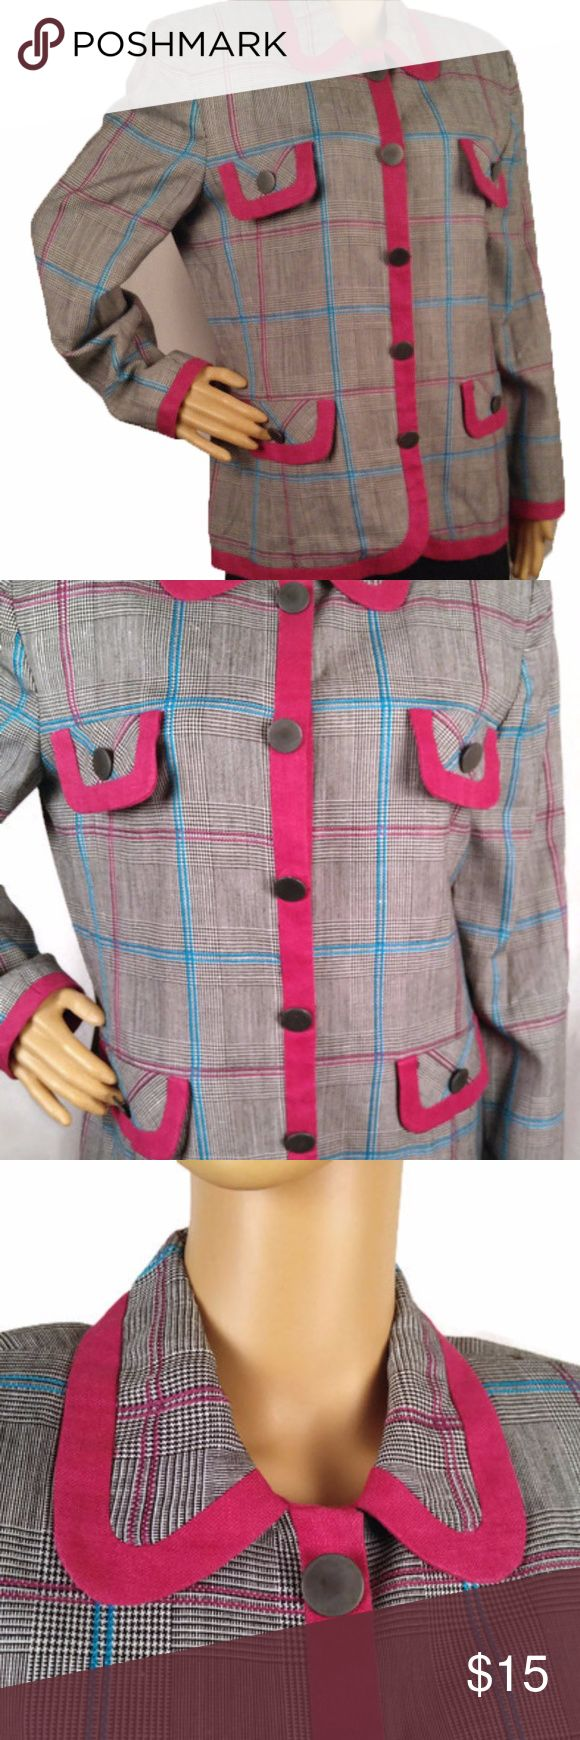 "Vintage 1980s Hot Pink Plaid Lined Blazer Vintage White, Hot Pink, and Black with Turquoise stripes plaid Women's Blazer trimmed in hot pink.  100% Rayon Labeled as dry clean only No pockets - Pocket look for decoration; Fully lined; Interior shoulder pads Please compare the measurements to a similar garment you already own that fits correctly. The garment is measured laying flat.  Size: 10 - Medium Shoulders at back between seams:  17"" Chest below armpits:  21"" Sleeve length:  23"" Shoulder…"